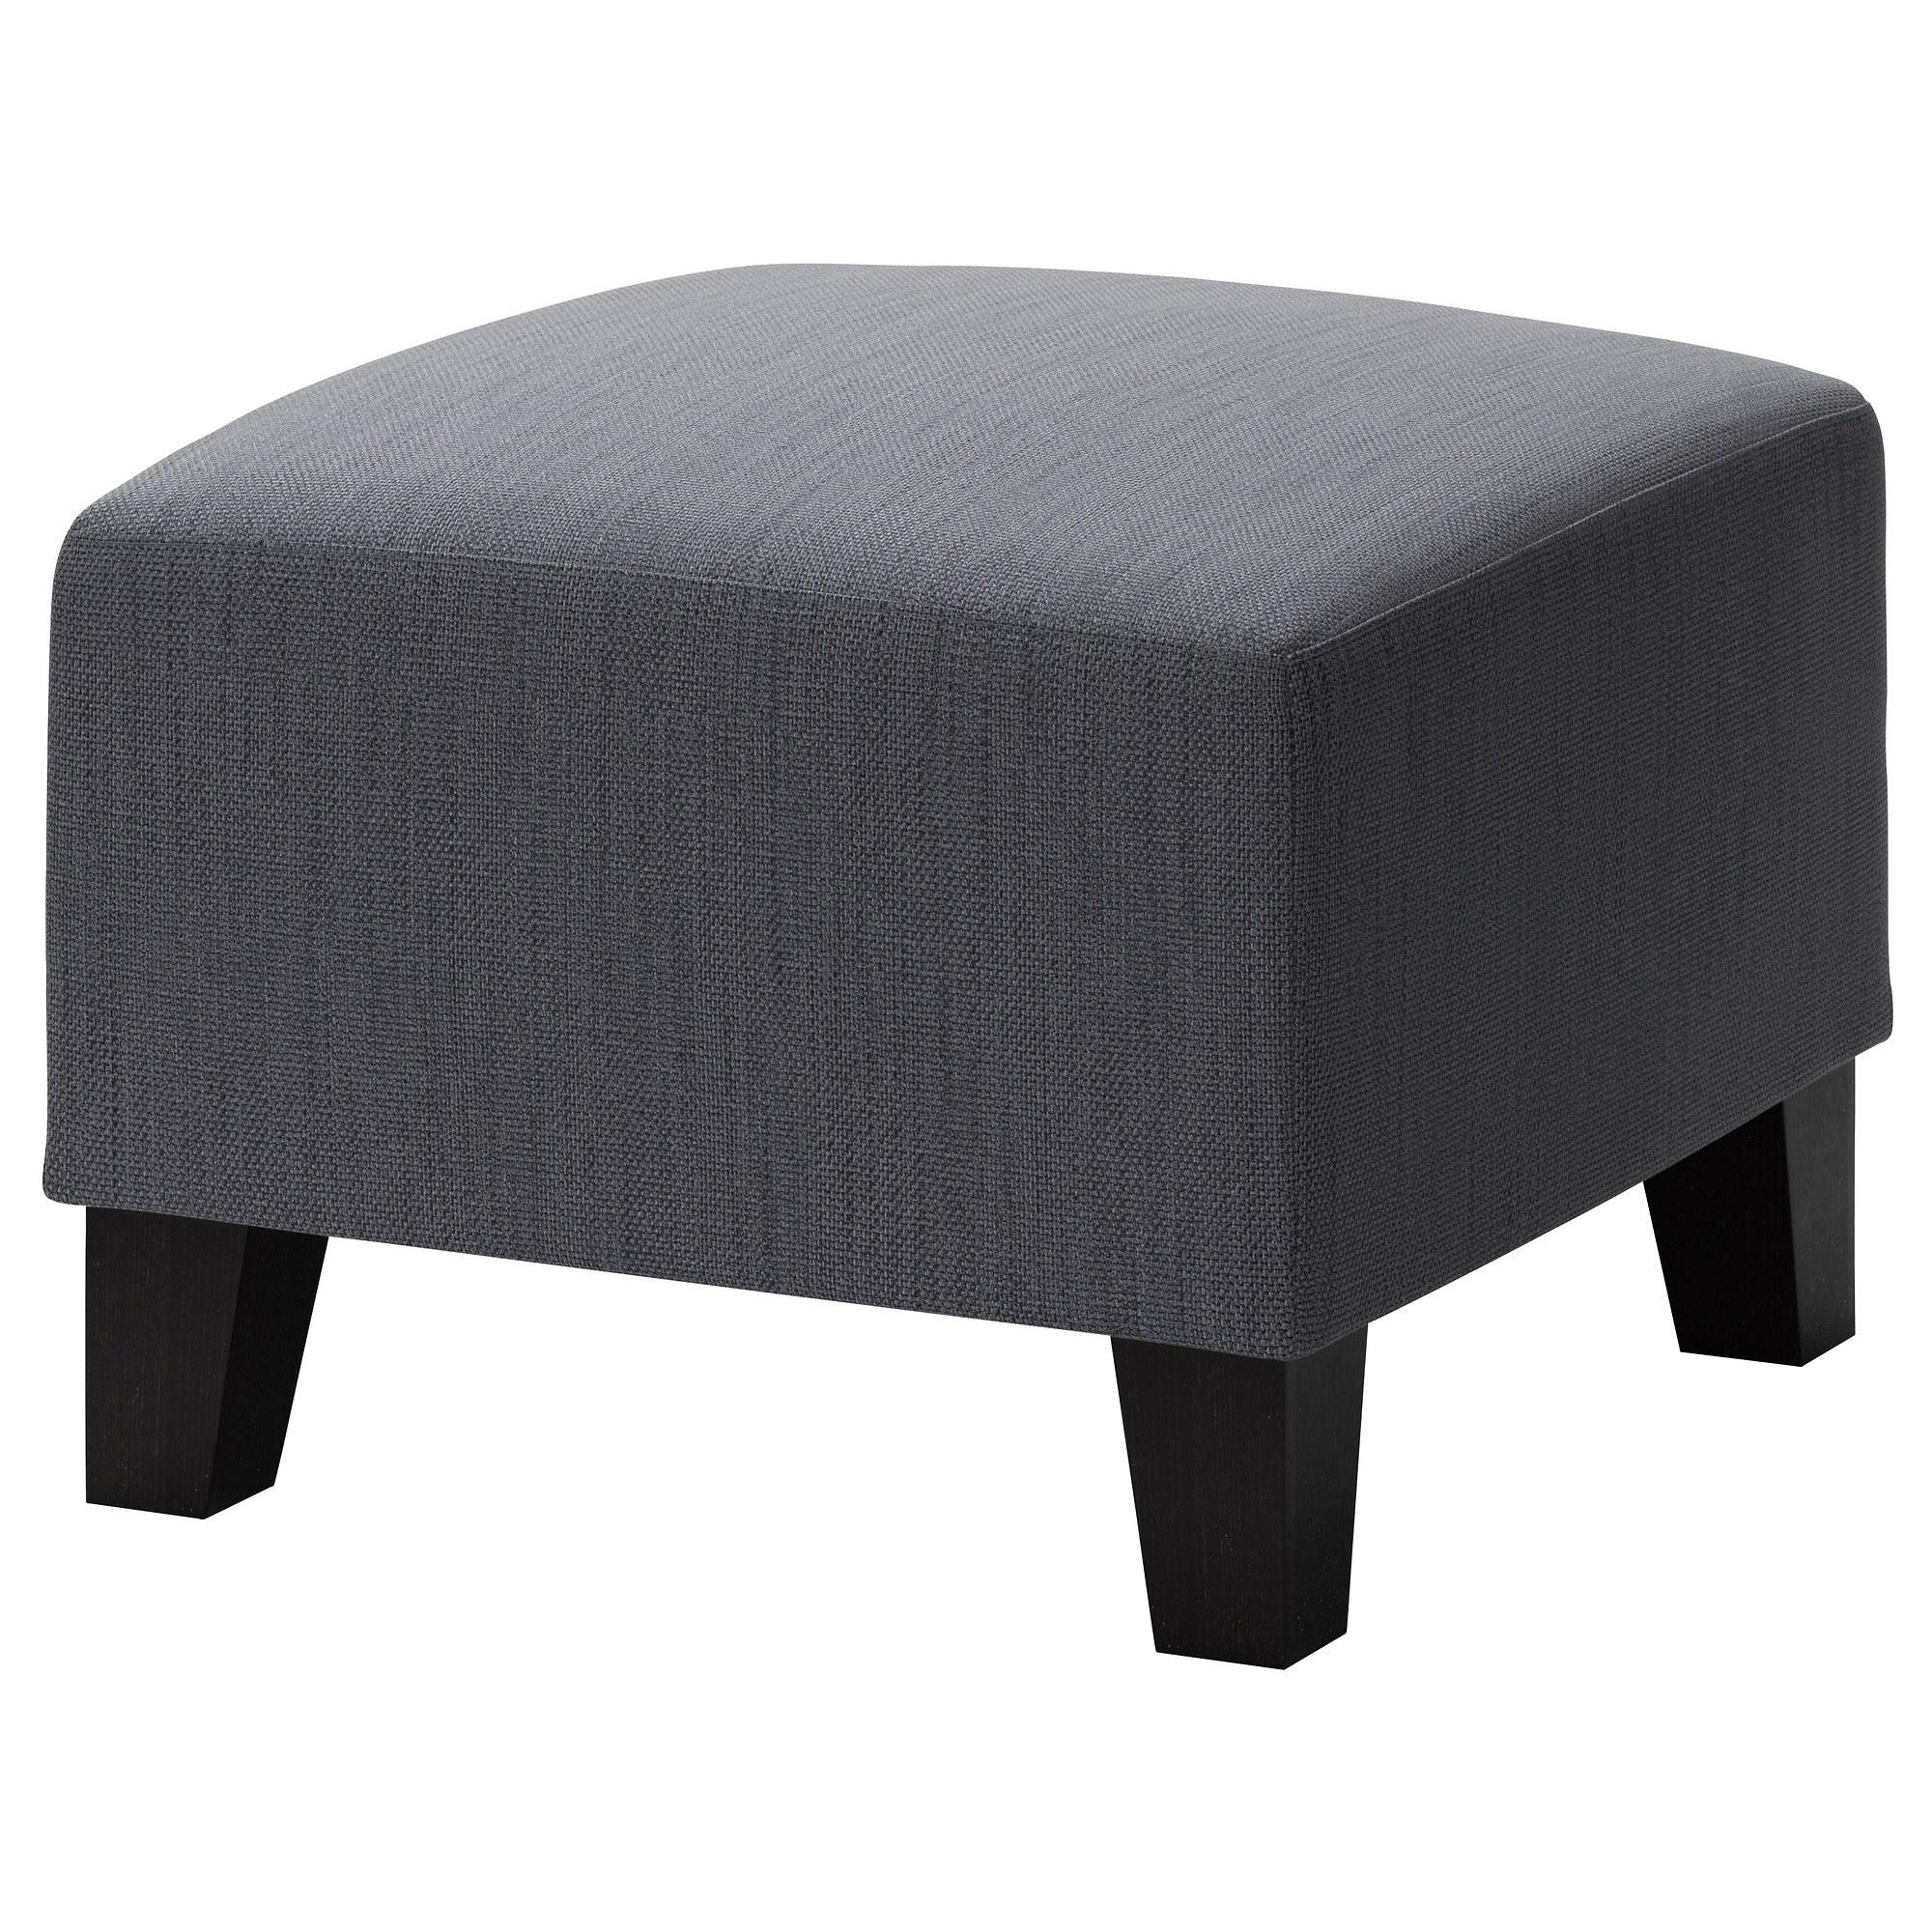 Fabric Ottomans Ikea Within Fabric Footstools (Image 3 of 15)